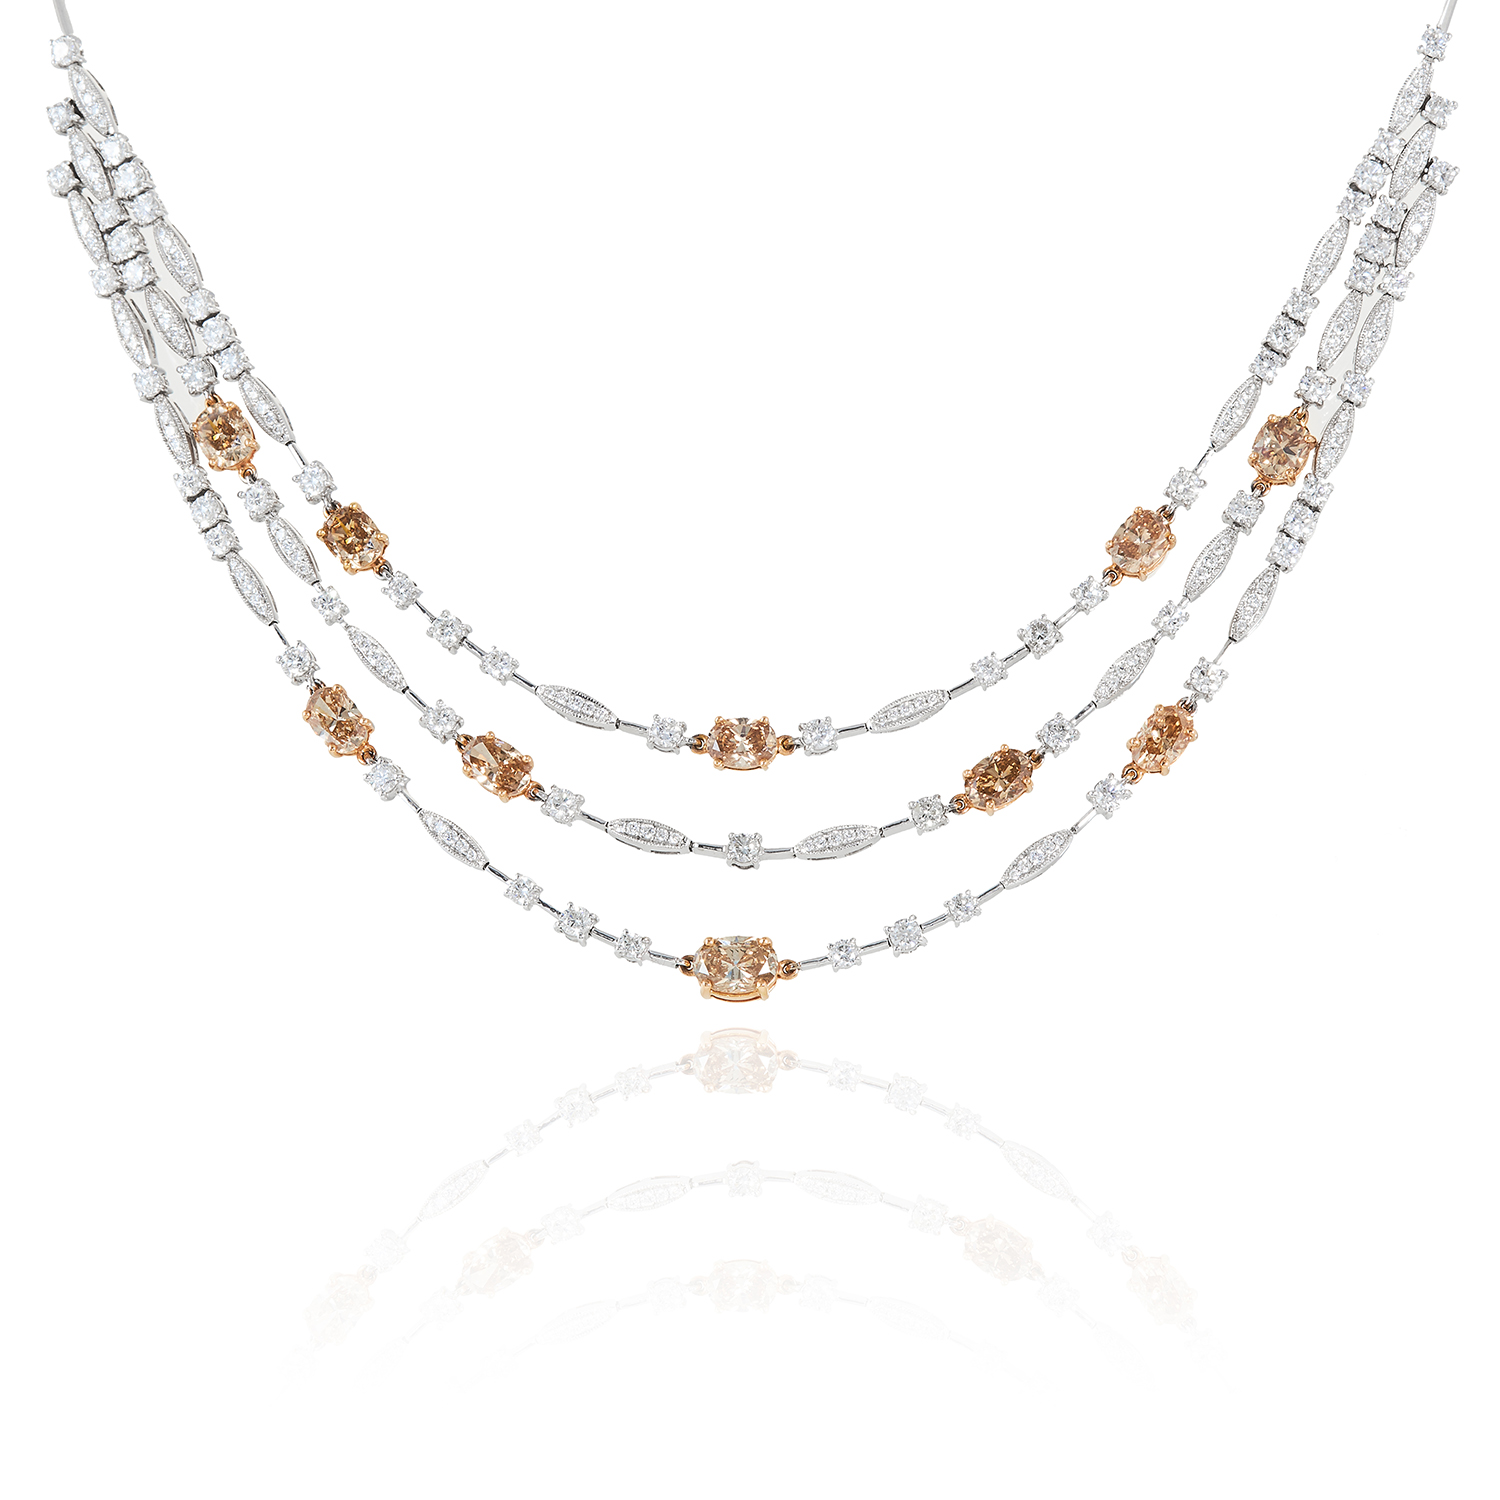 A 10.90 CARAT DIAMOND NECKLACE in 18ct white gold, designed as a trio of rows of white diamond